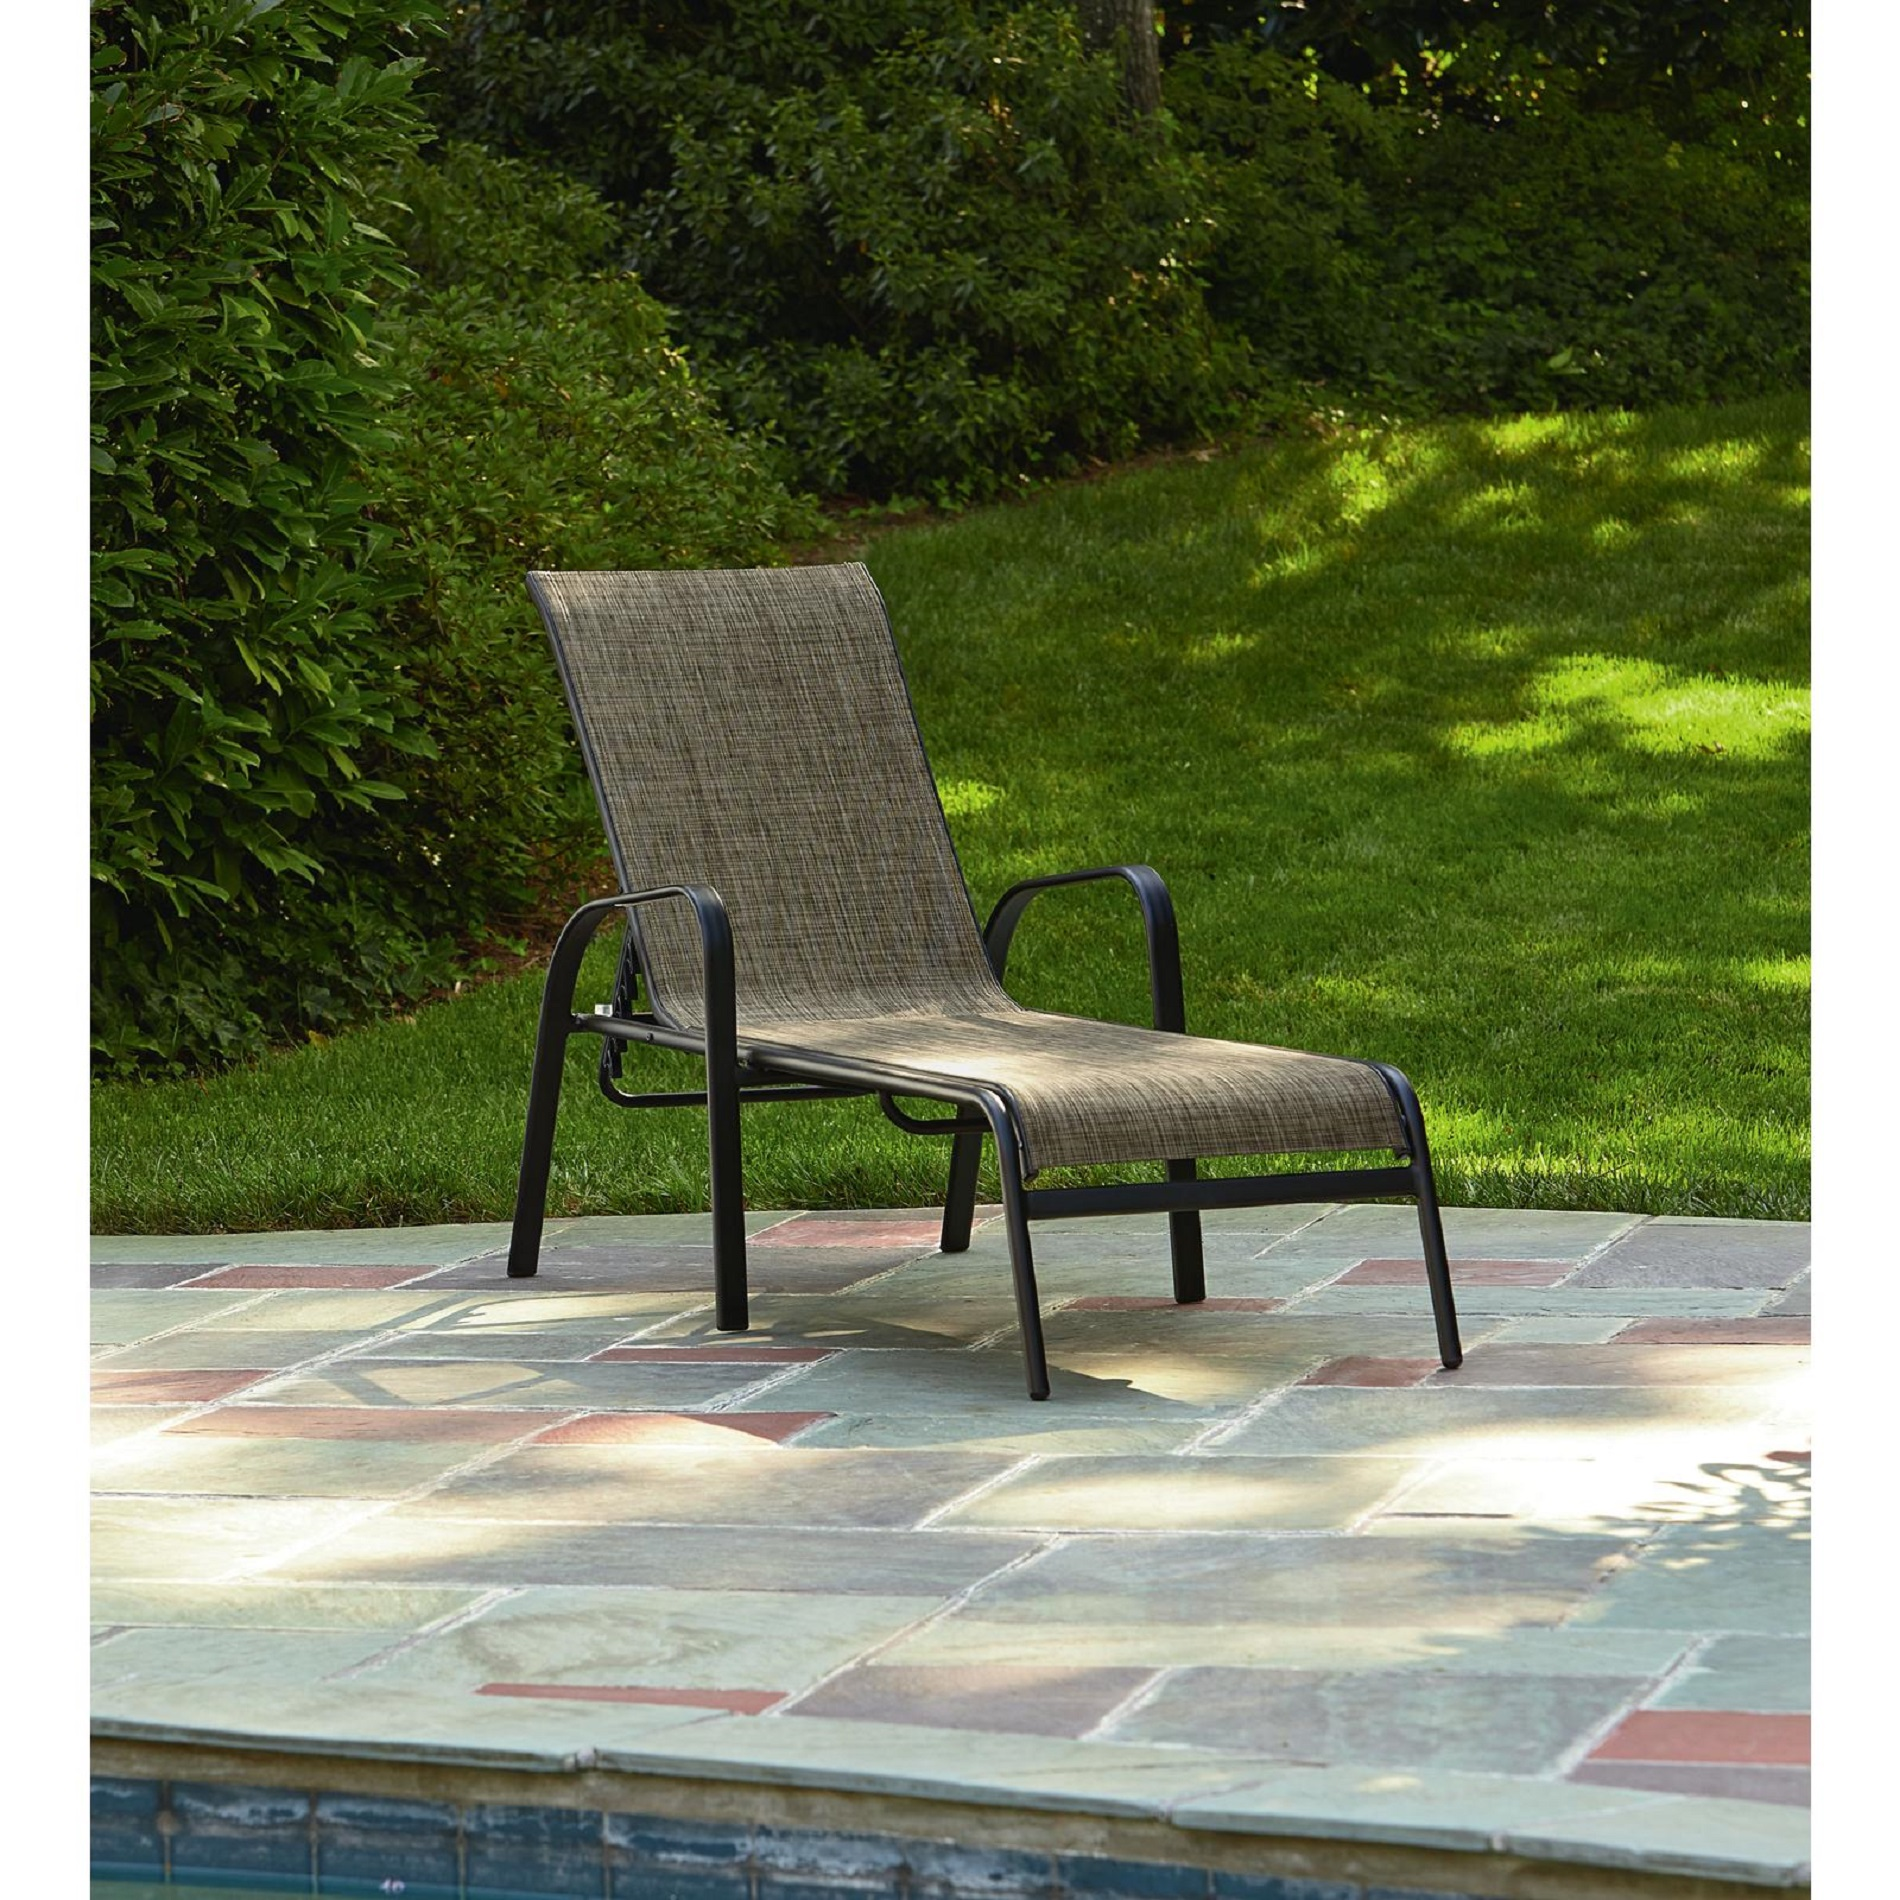 Kmart Lawn Chairs Kmart Patio Chairs Best Interior Furniture